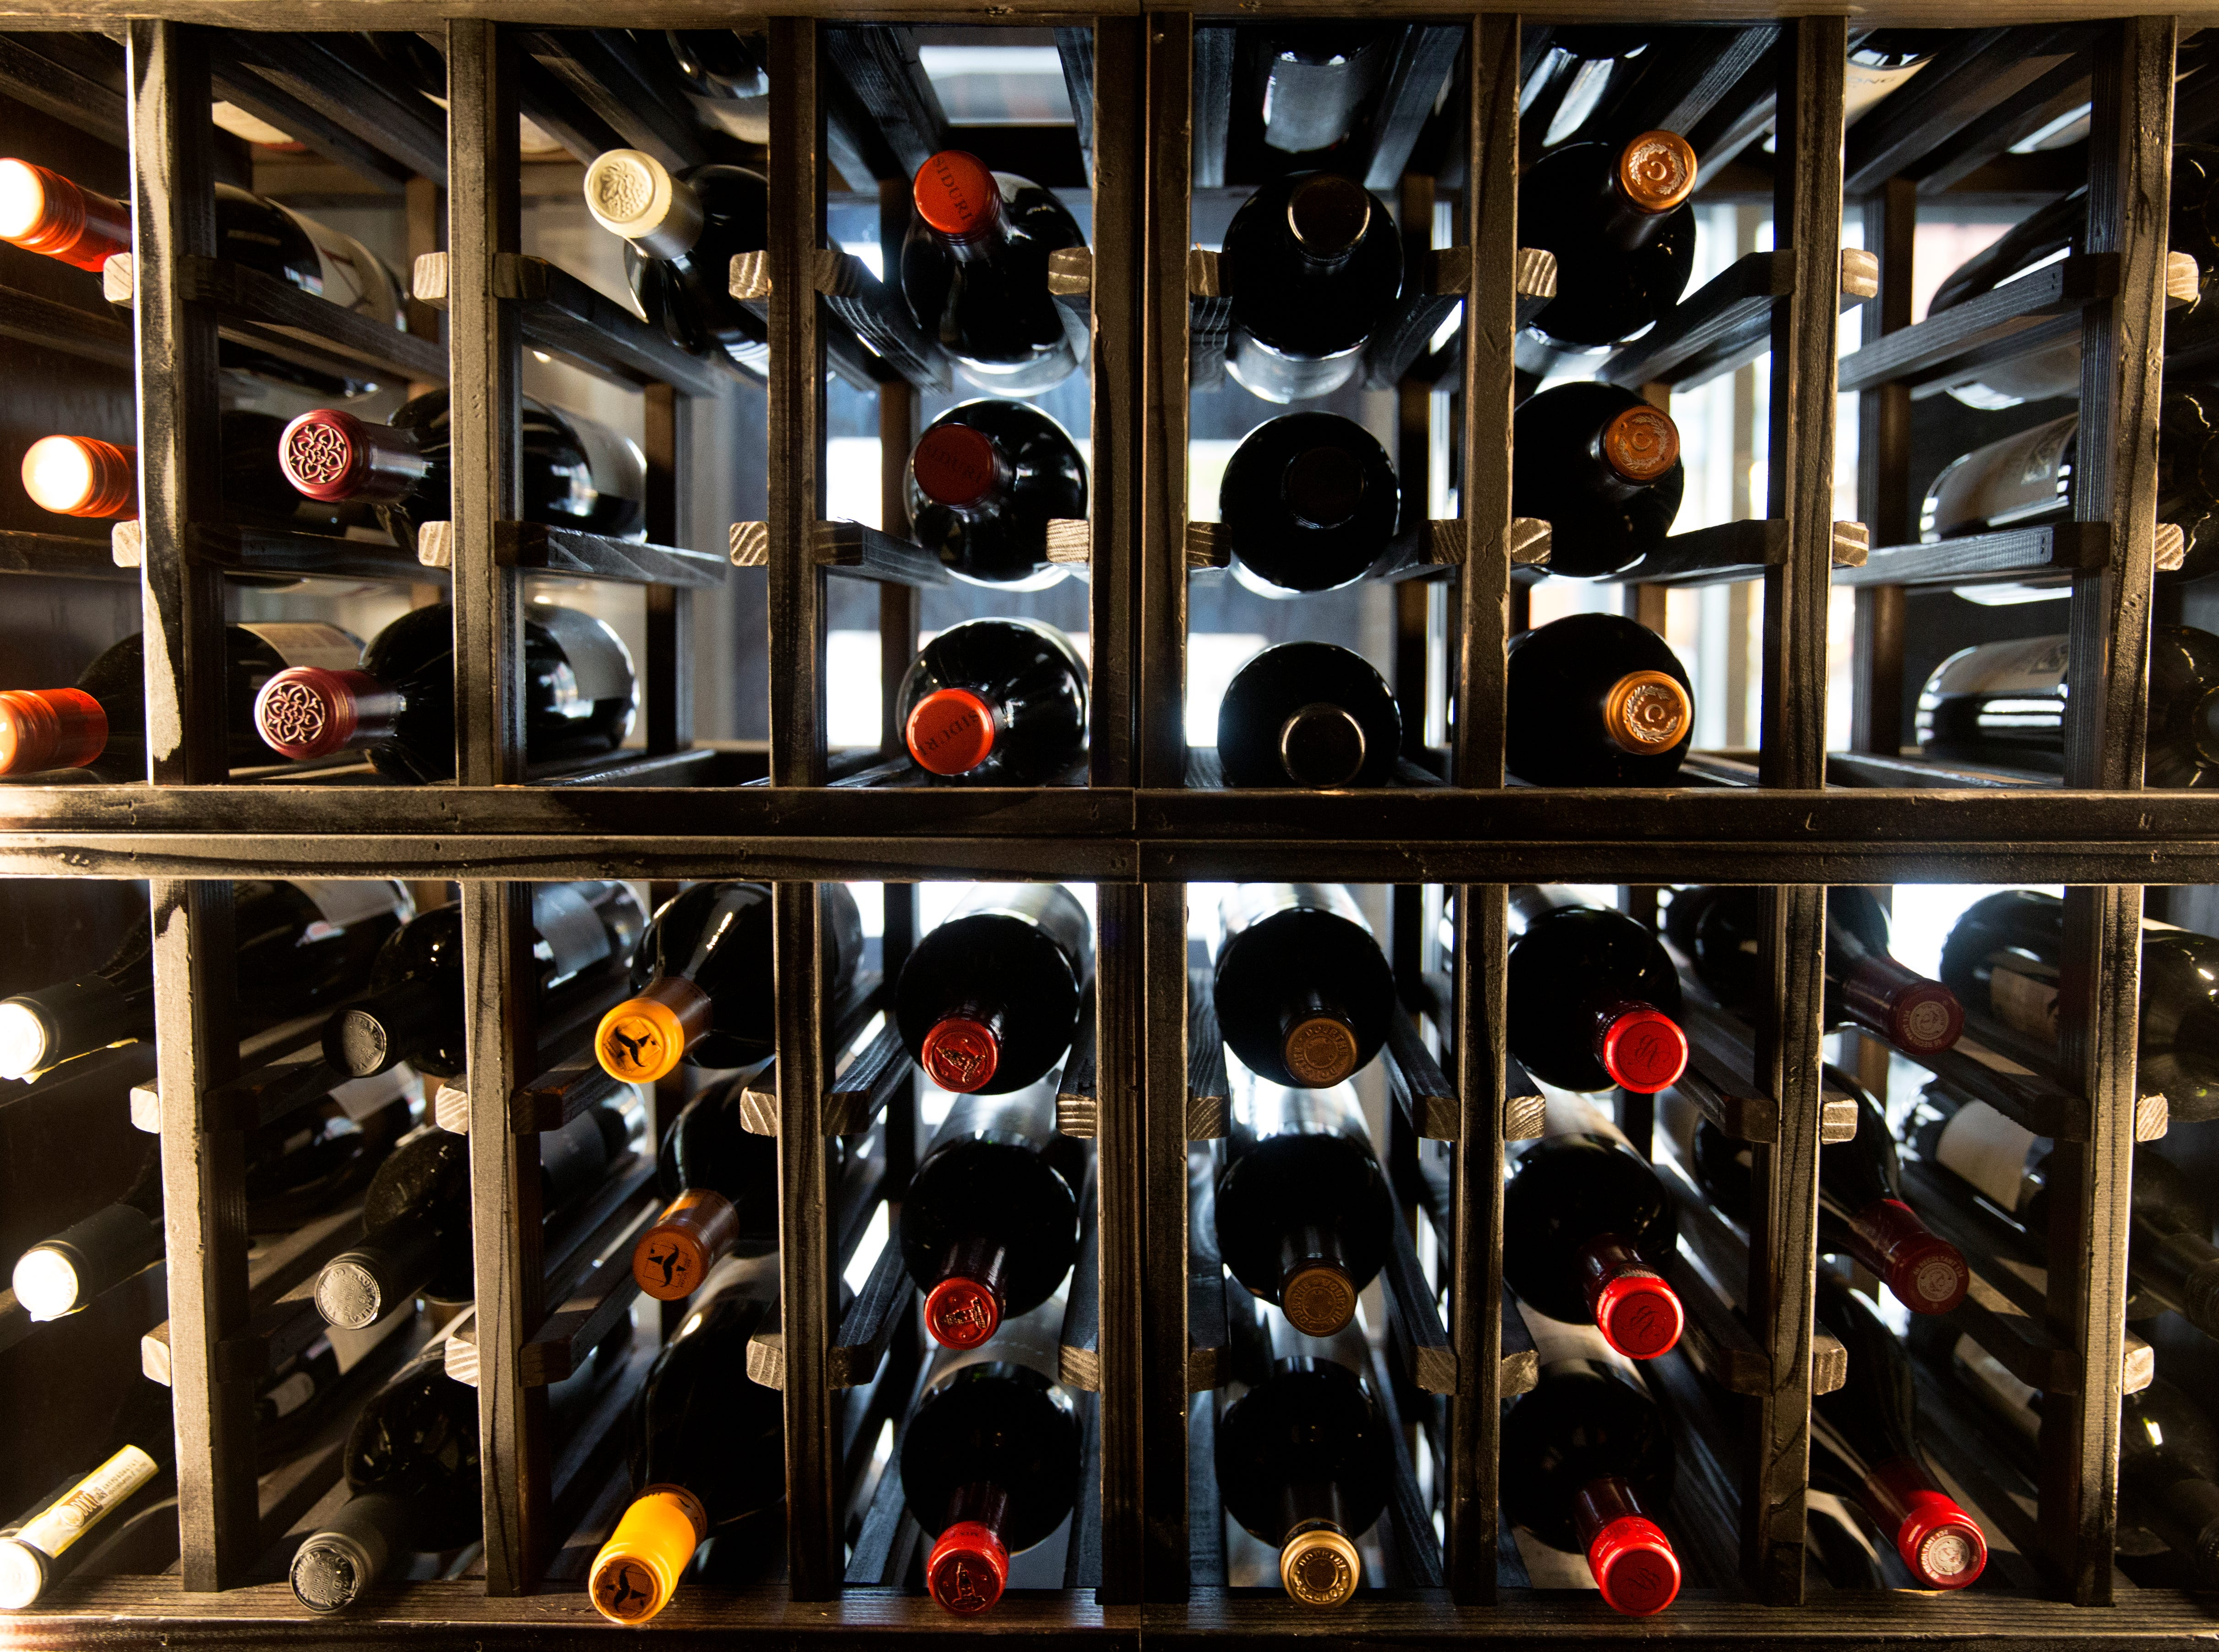 Red wine is stored in a climate controlled cooler at The Mercer on Vine Street in Over-the-Rhine. The restaurant has been serving Italian-Eureopen food since 2014. The bar opens at 4 pm. The restaurant at 5 pm. The owner, Jon Zipperstein, also owns Kaze, just up the block and Embers in Madeira. Emmy Friedrichs is the manager.